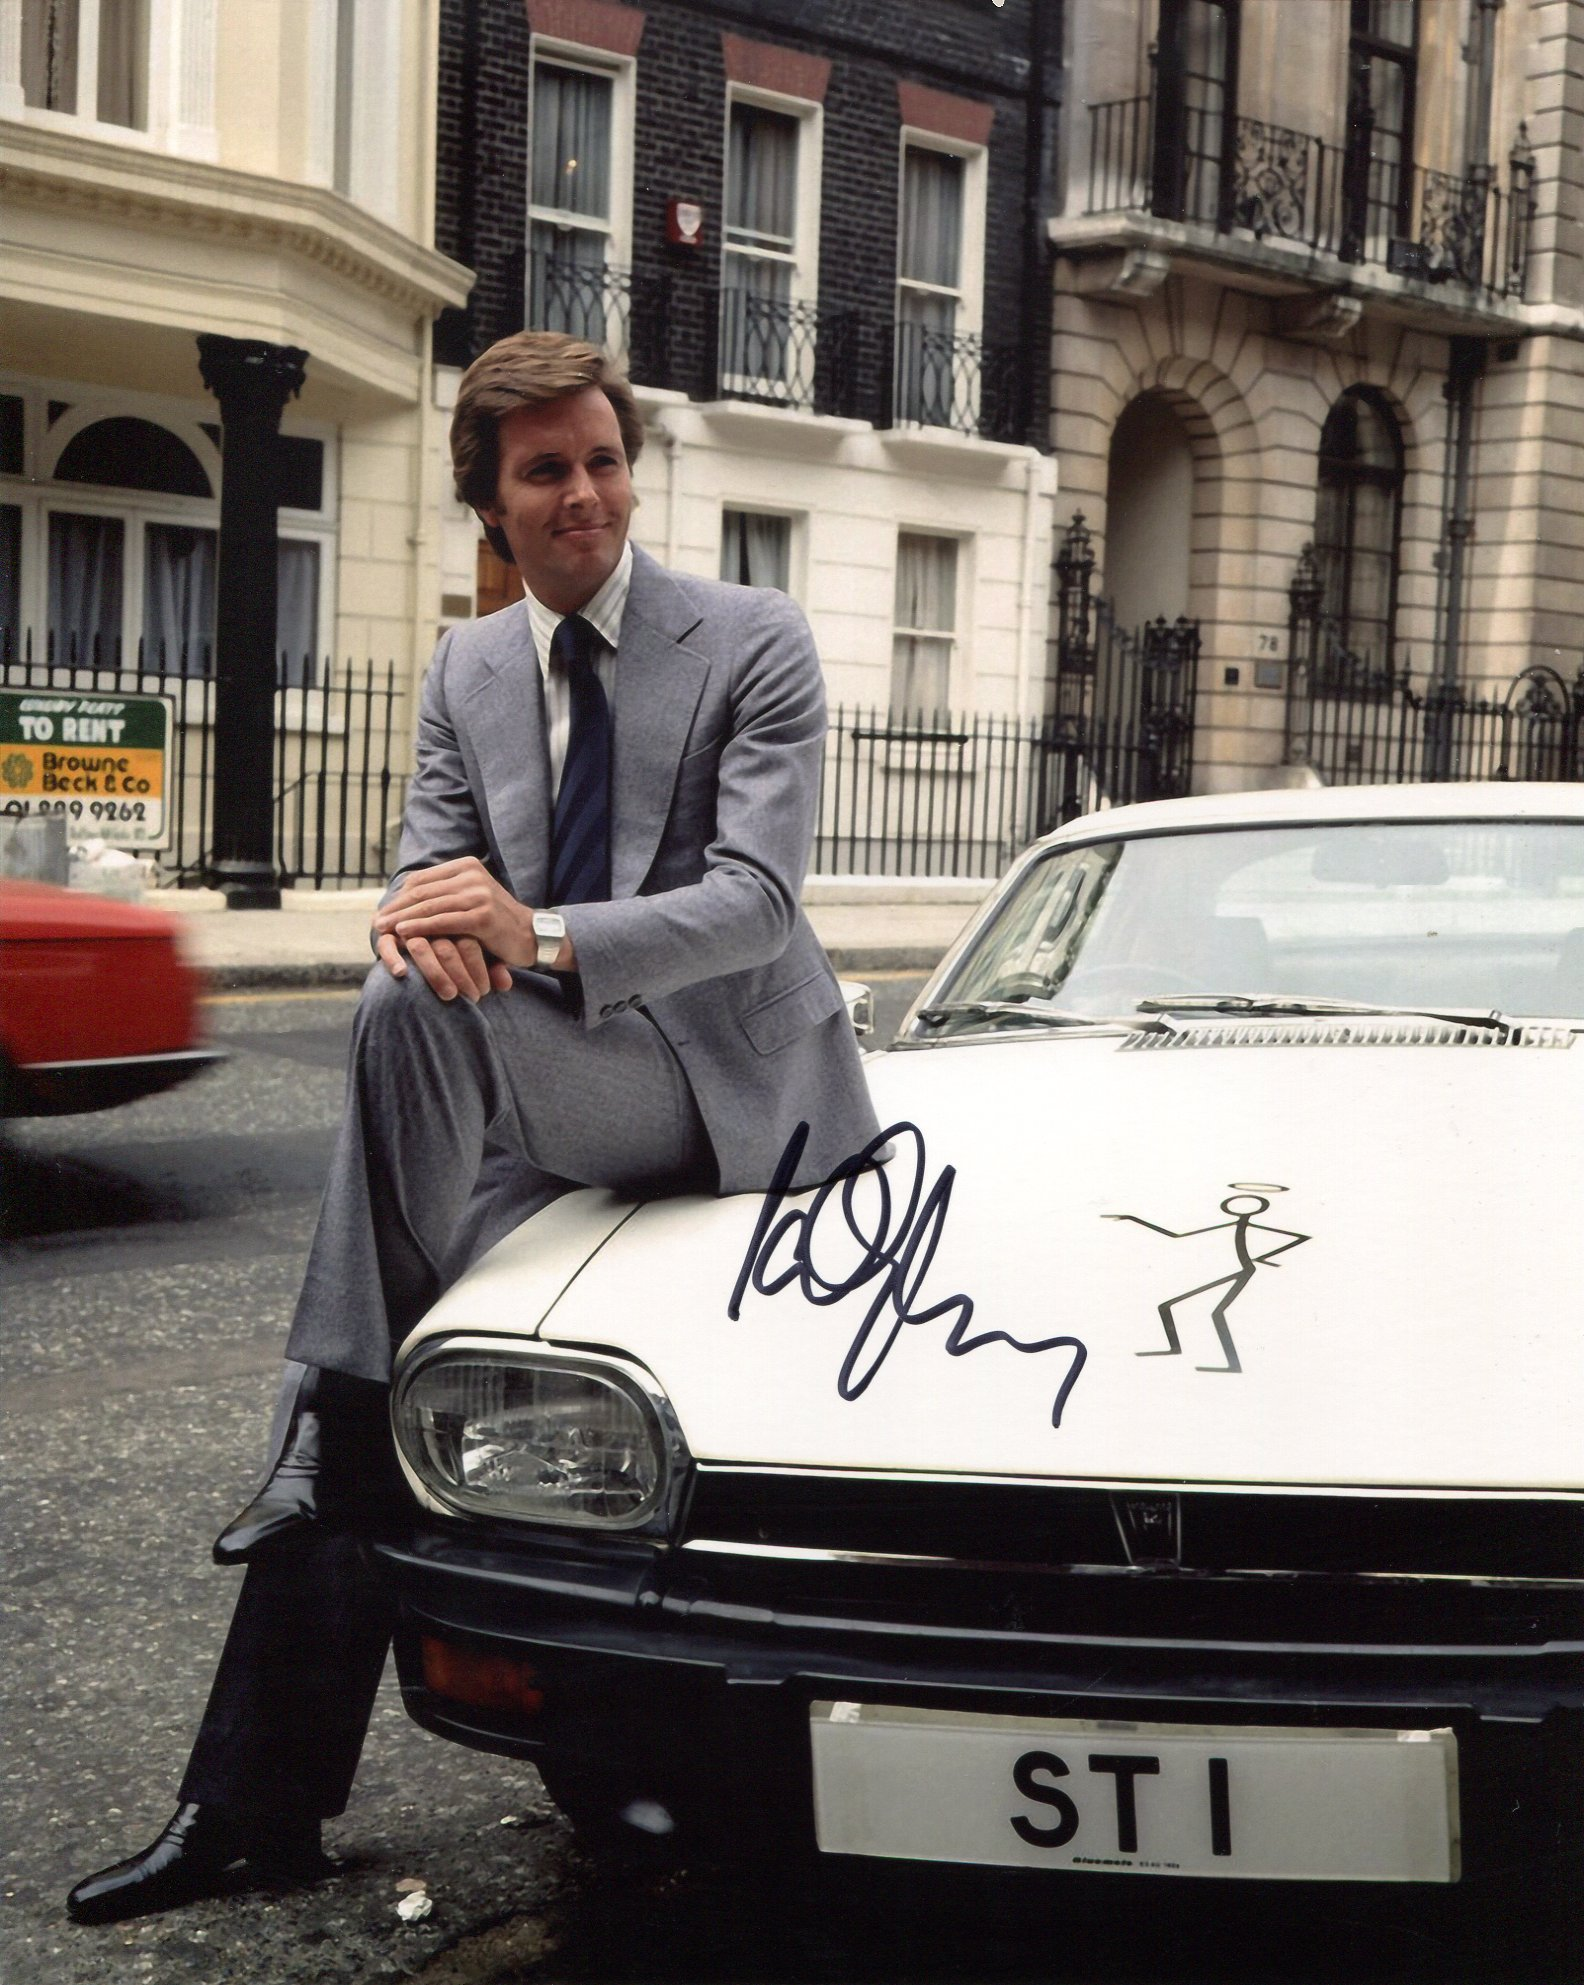 The Saint, 8x10 photo signed by The Saint himself, actor Ian Ogilvy. Good condition. All